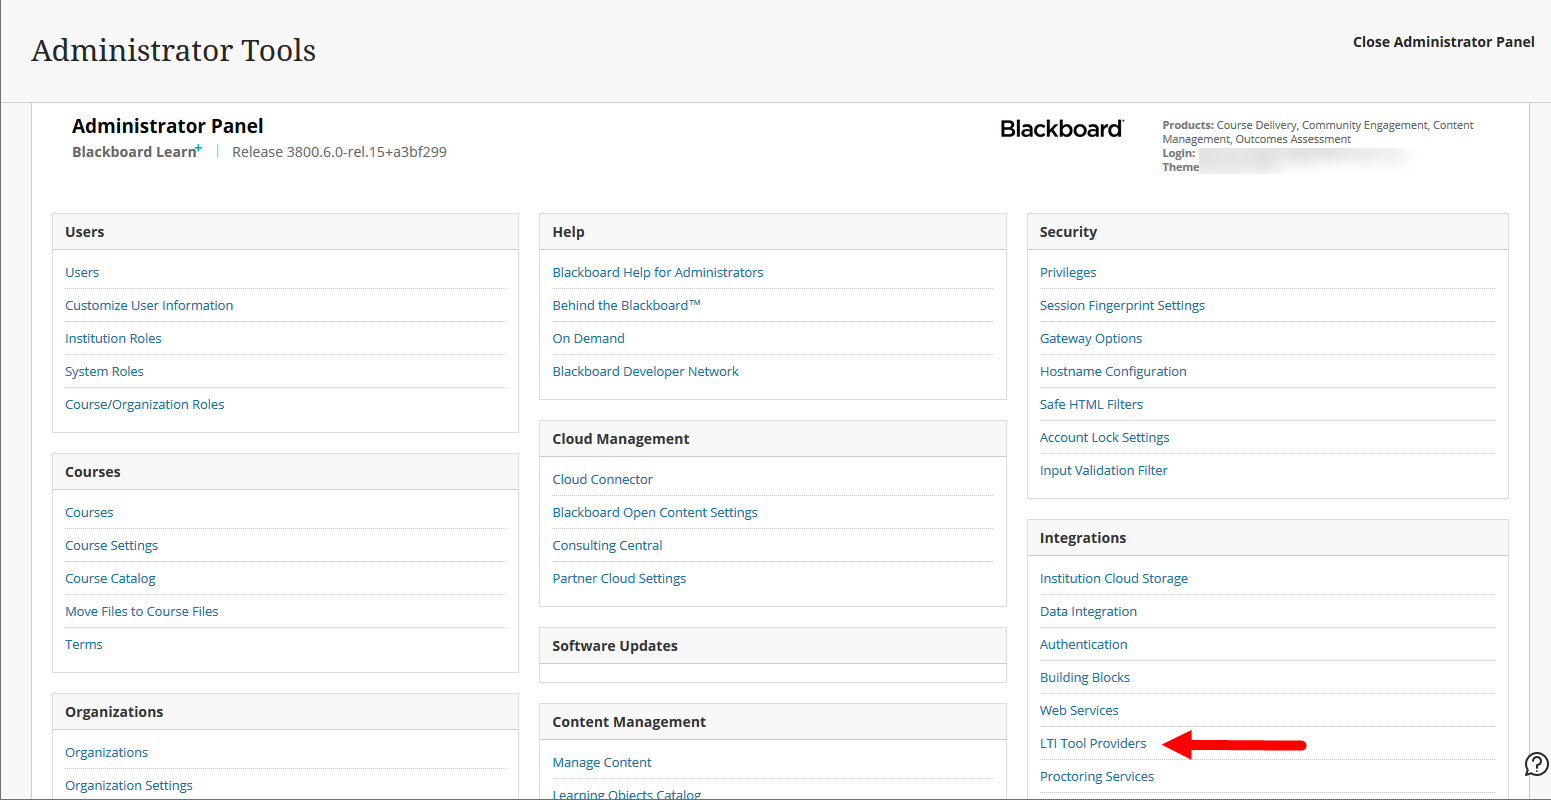 System Admin panel of Blackboard with LTI Tool Providers option identified for selection as described